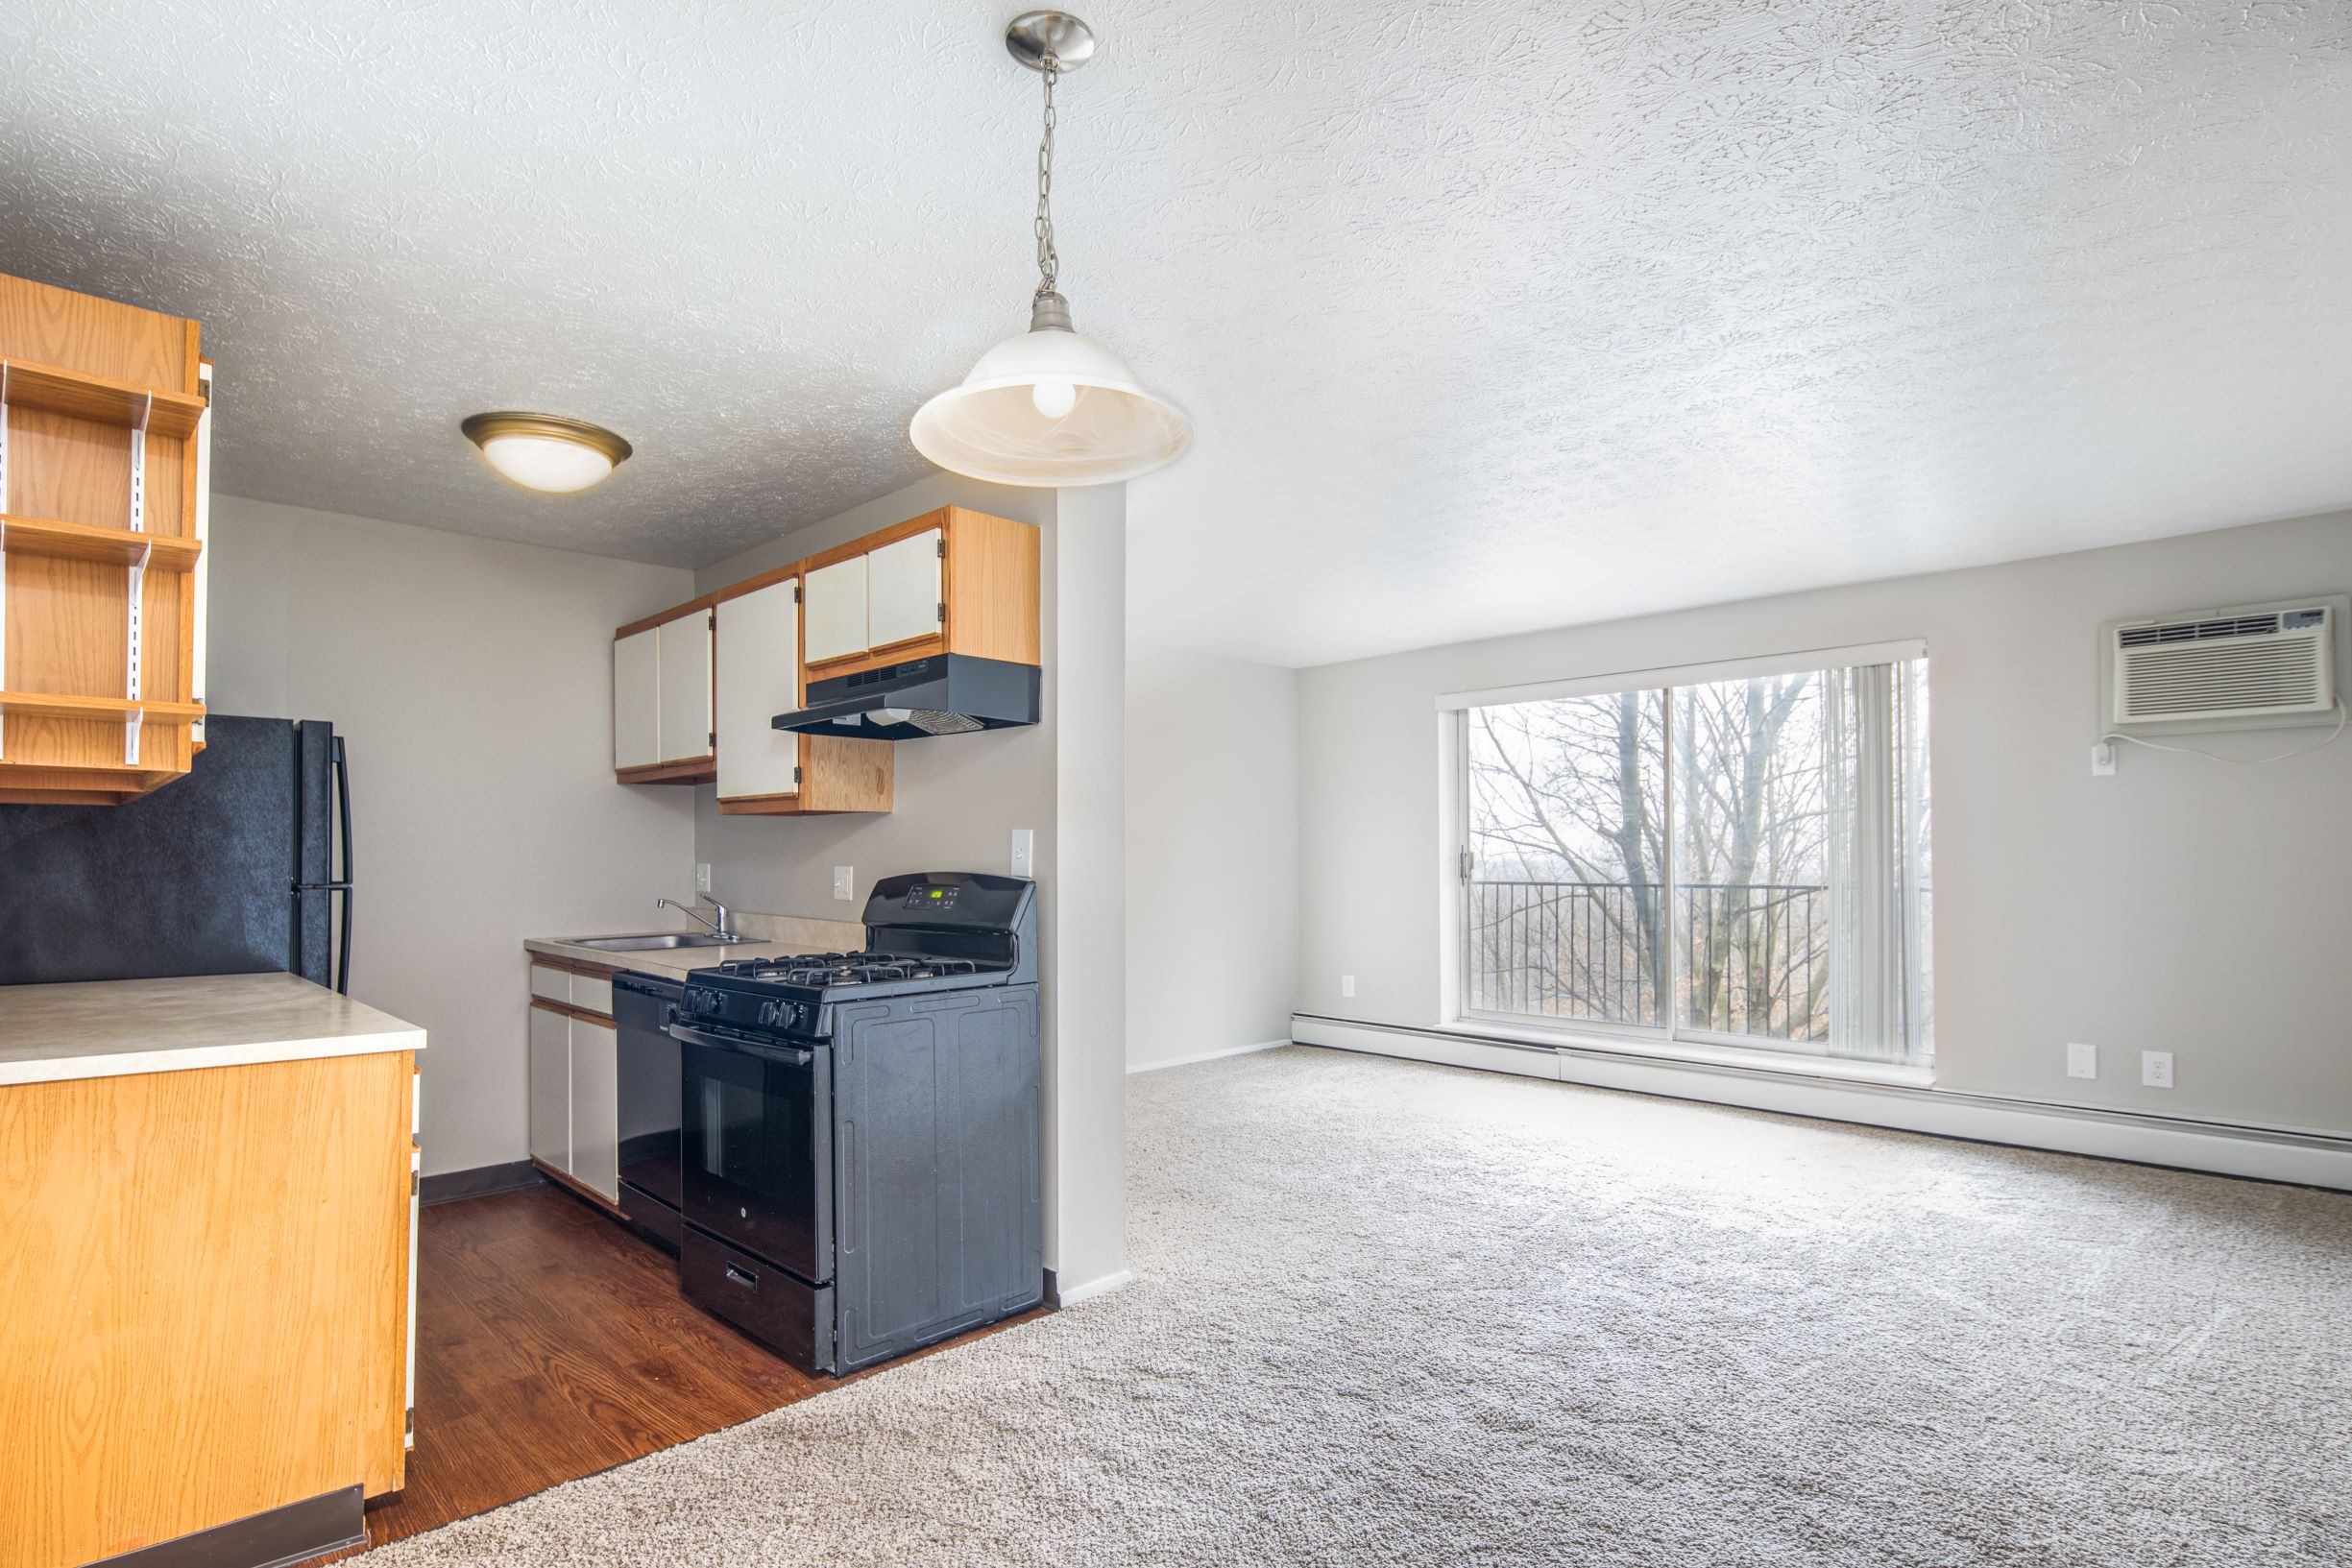 Kitchen leading into living room with large bright windows